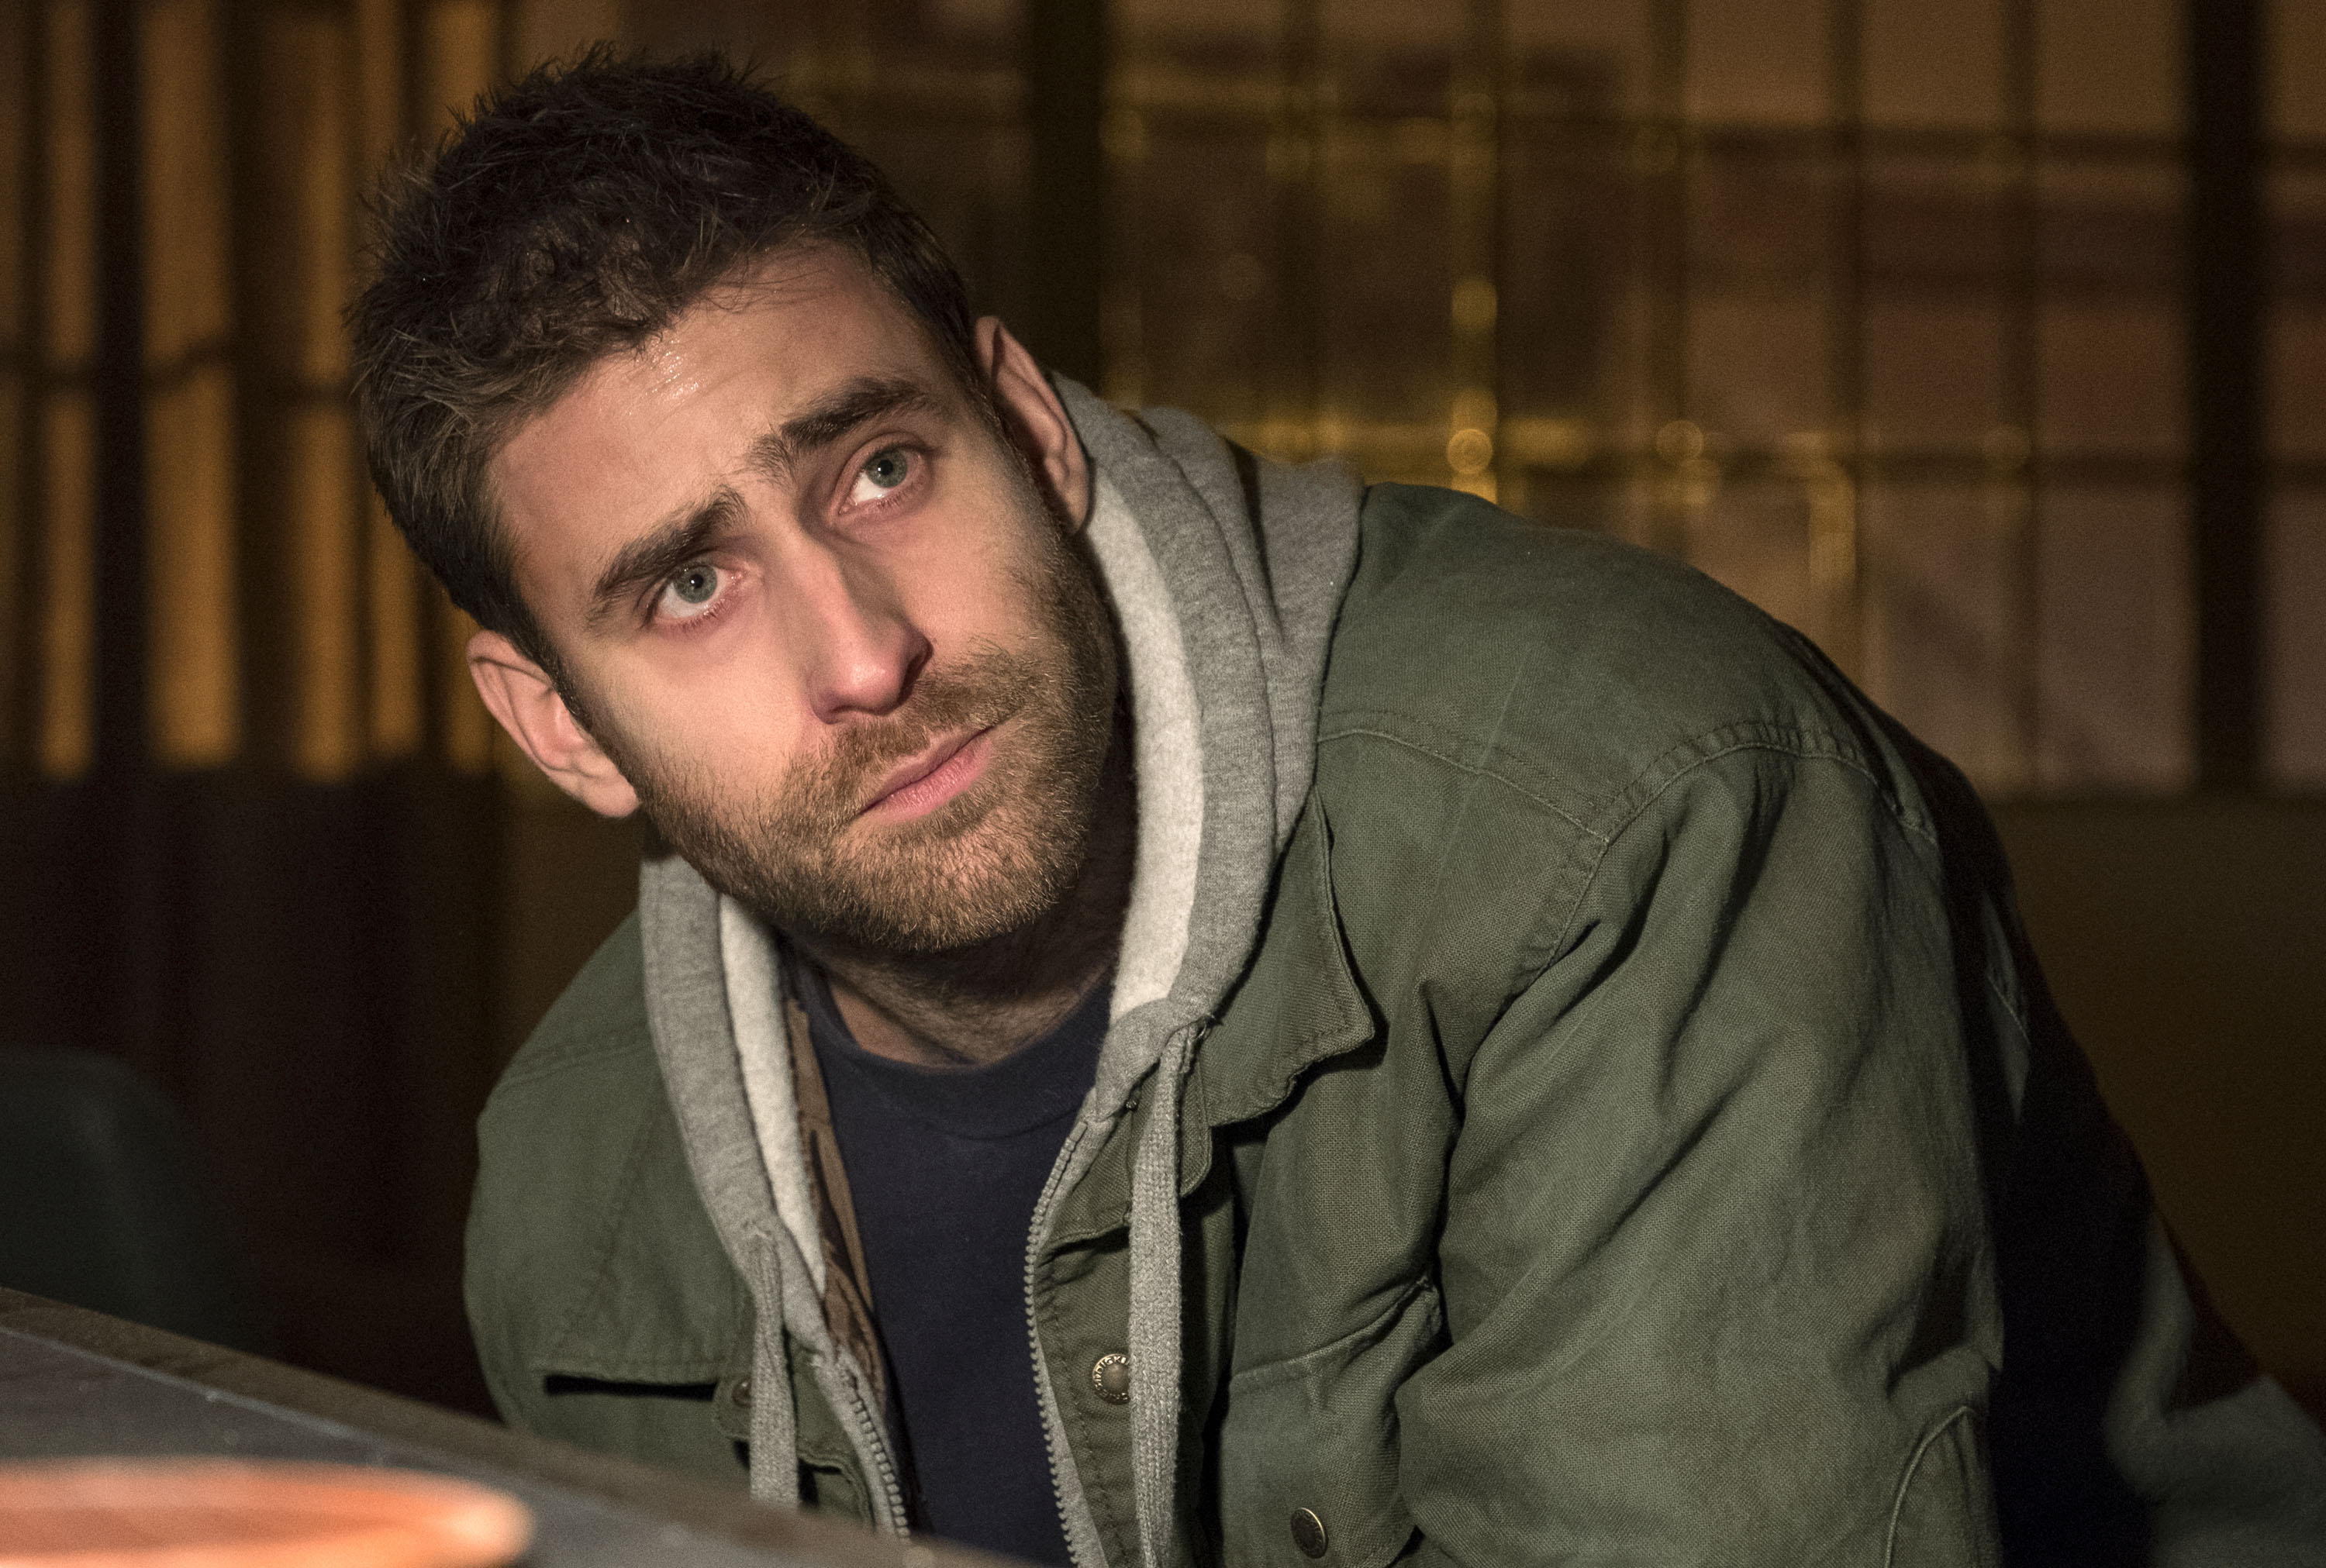 Haunting Of Hill House Actor Oliver Jackson Cohen Joins The Cast Of The Haunting Of Bly Manor Gamesradar